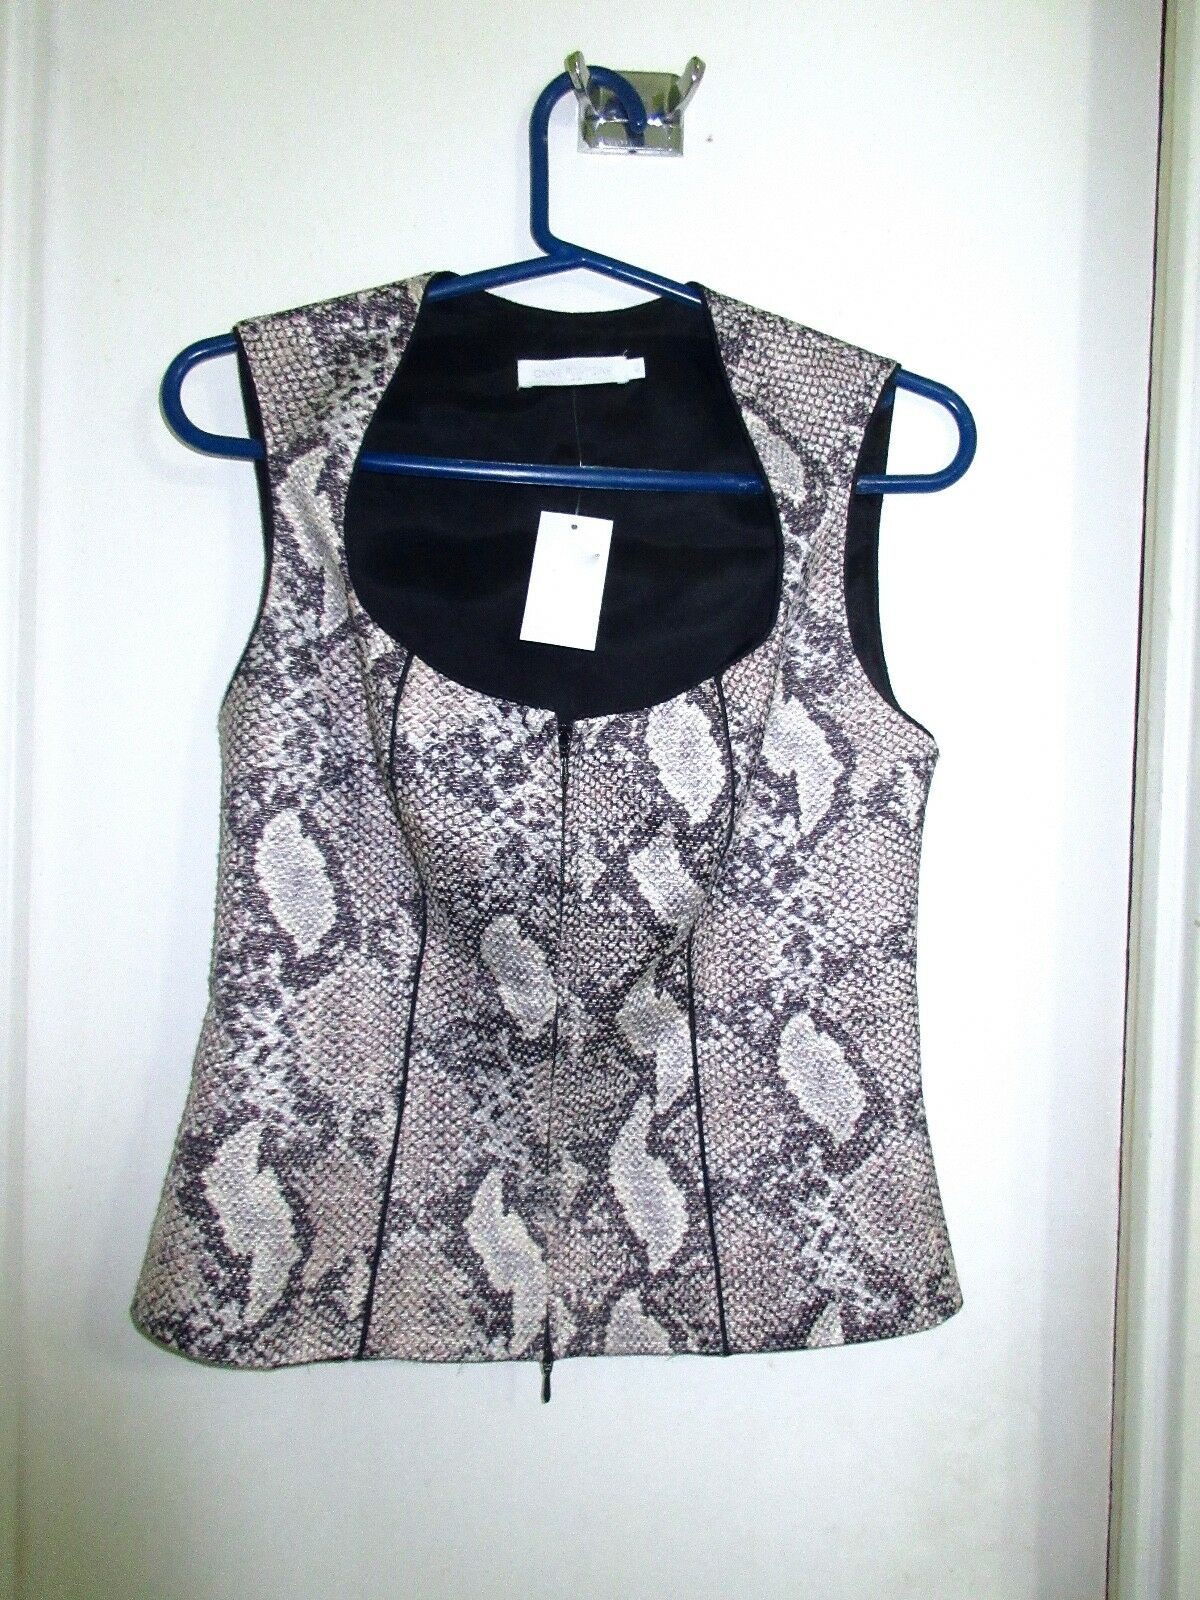 Anne Fontaine 40 6 Snakeskin Print Zip Sleeveless Vest Blouse Snake Skin Superb